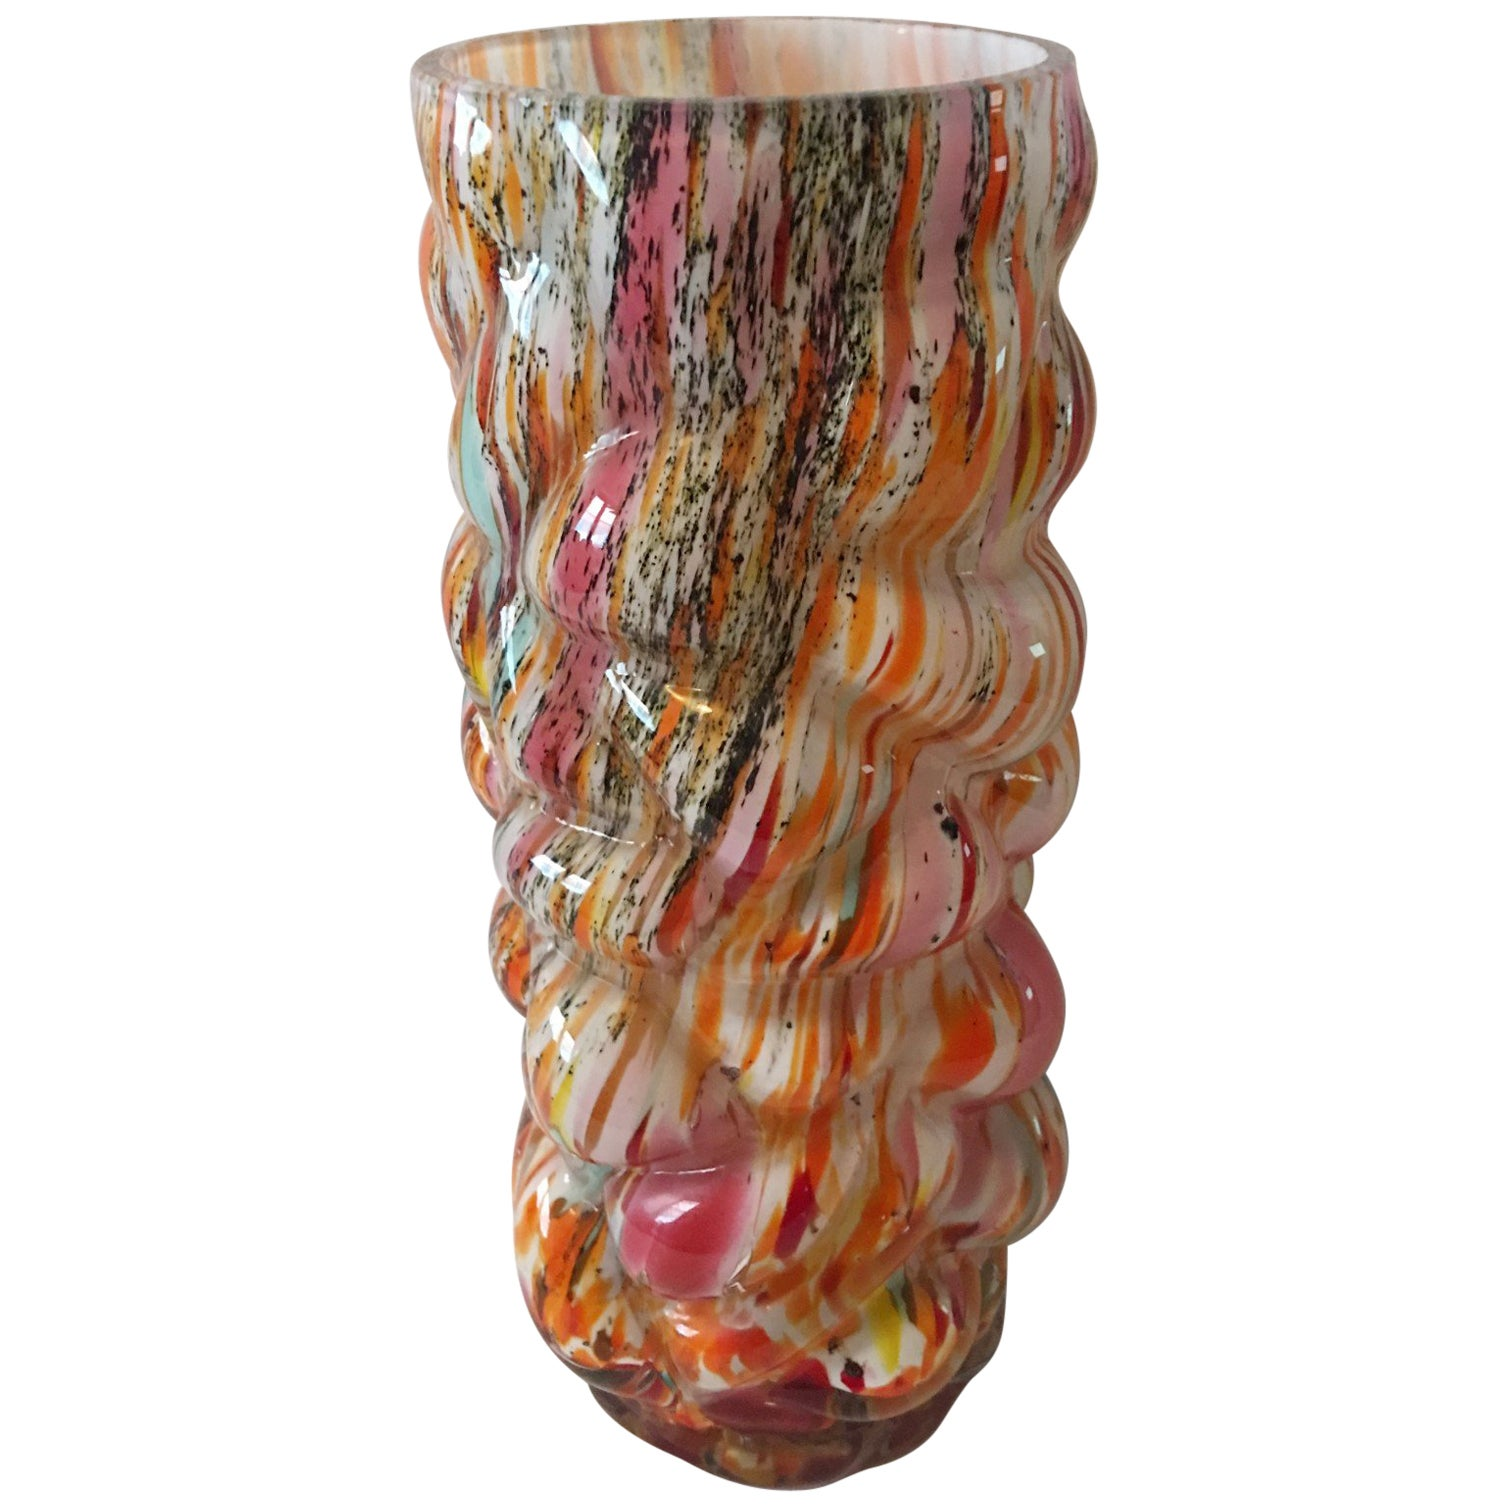 Multi-Color Hand Blown Murano Glass Vase from 1960s Italy